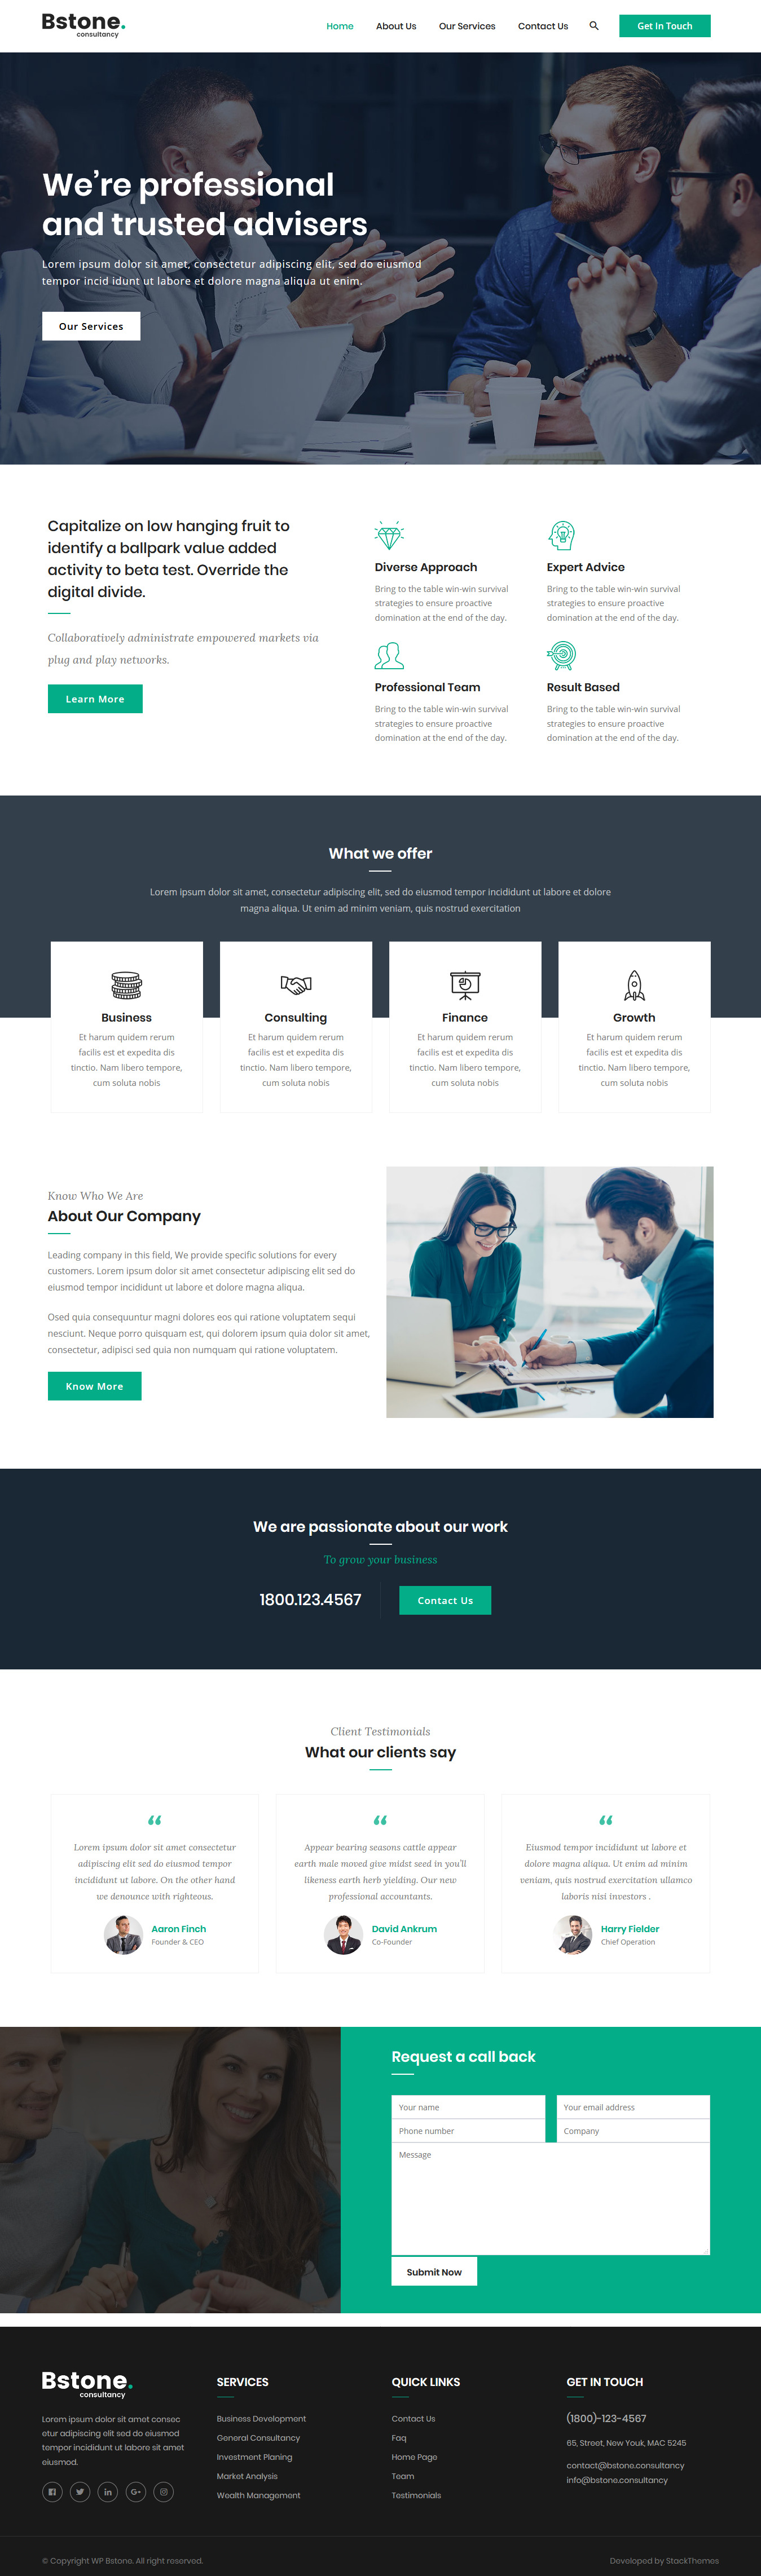 Bstone - Best Free BuddyPress WordPress Theme